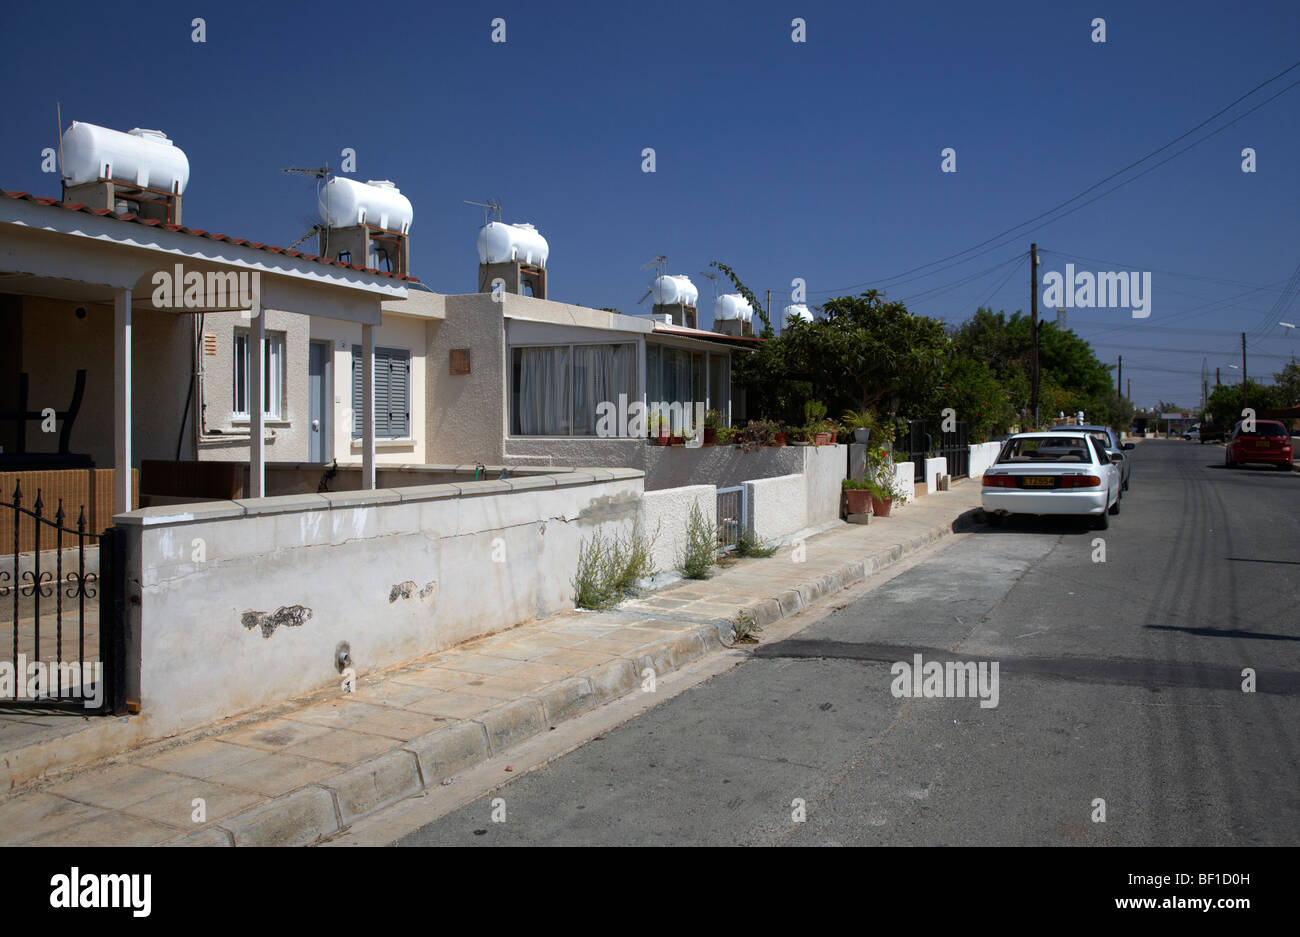 eac refugee site near dhekelia power station republic of cyprus - Stock Image